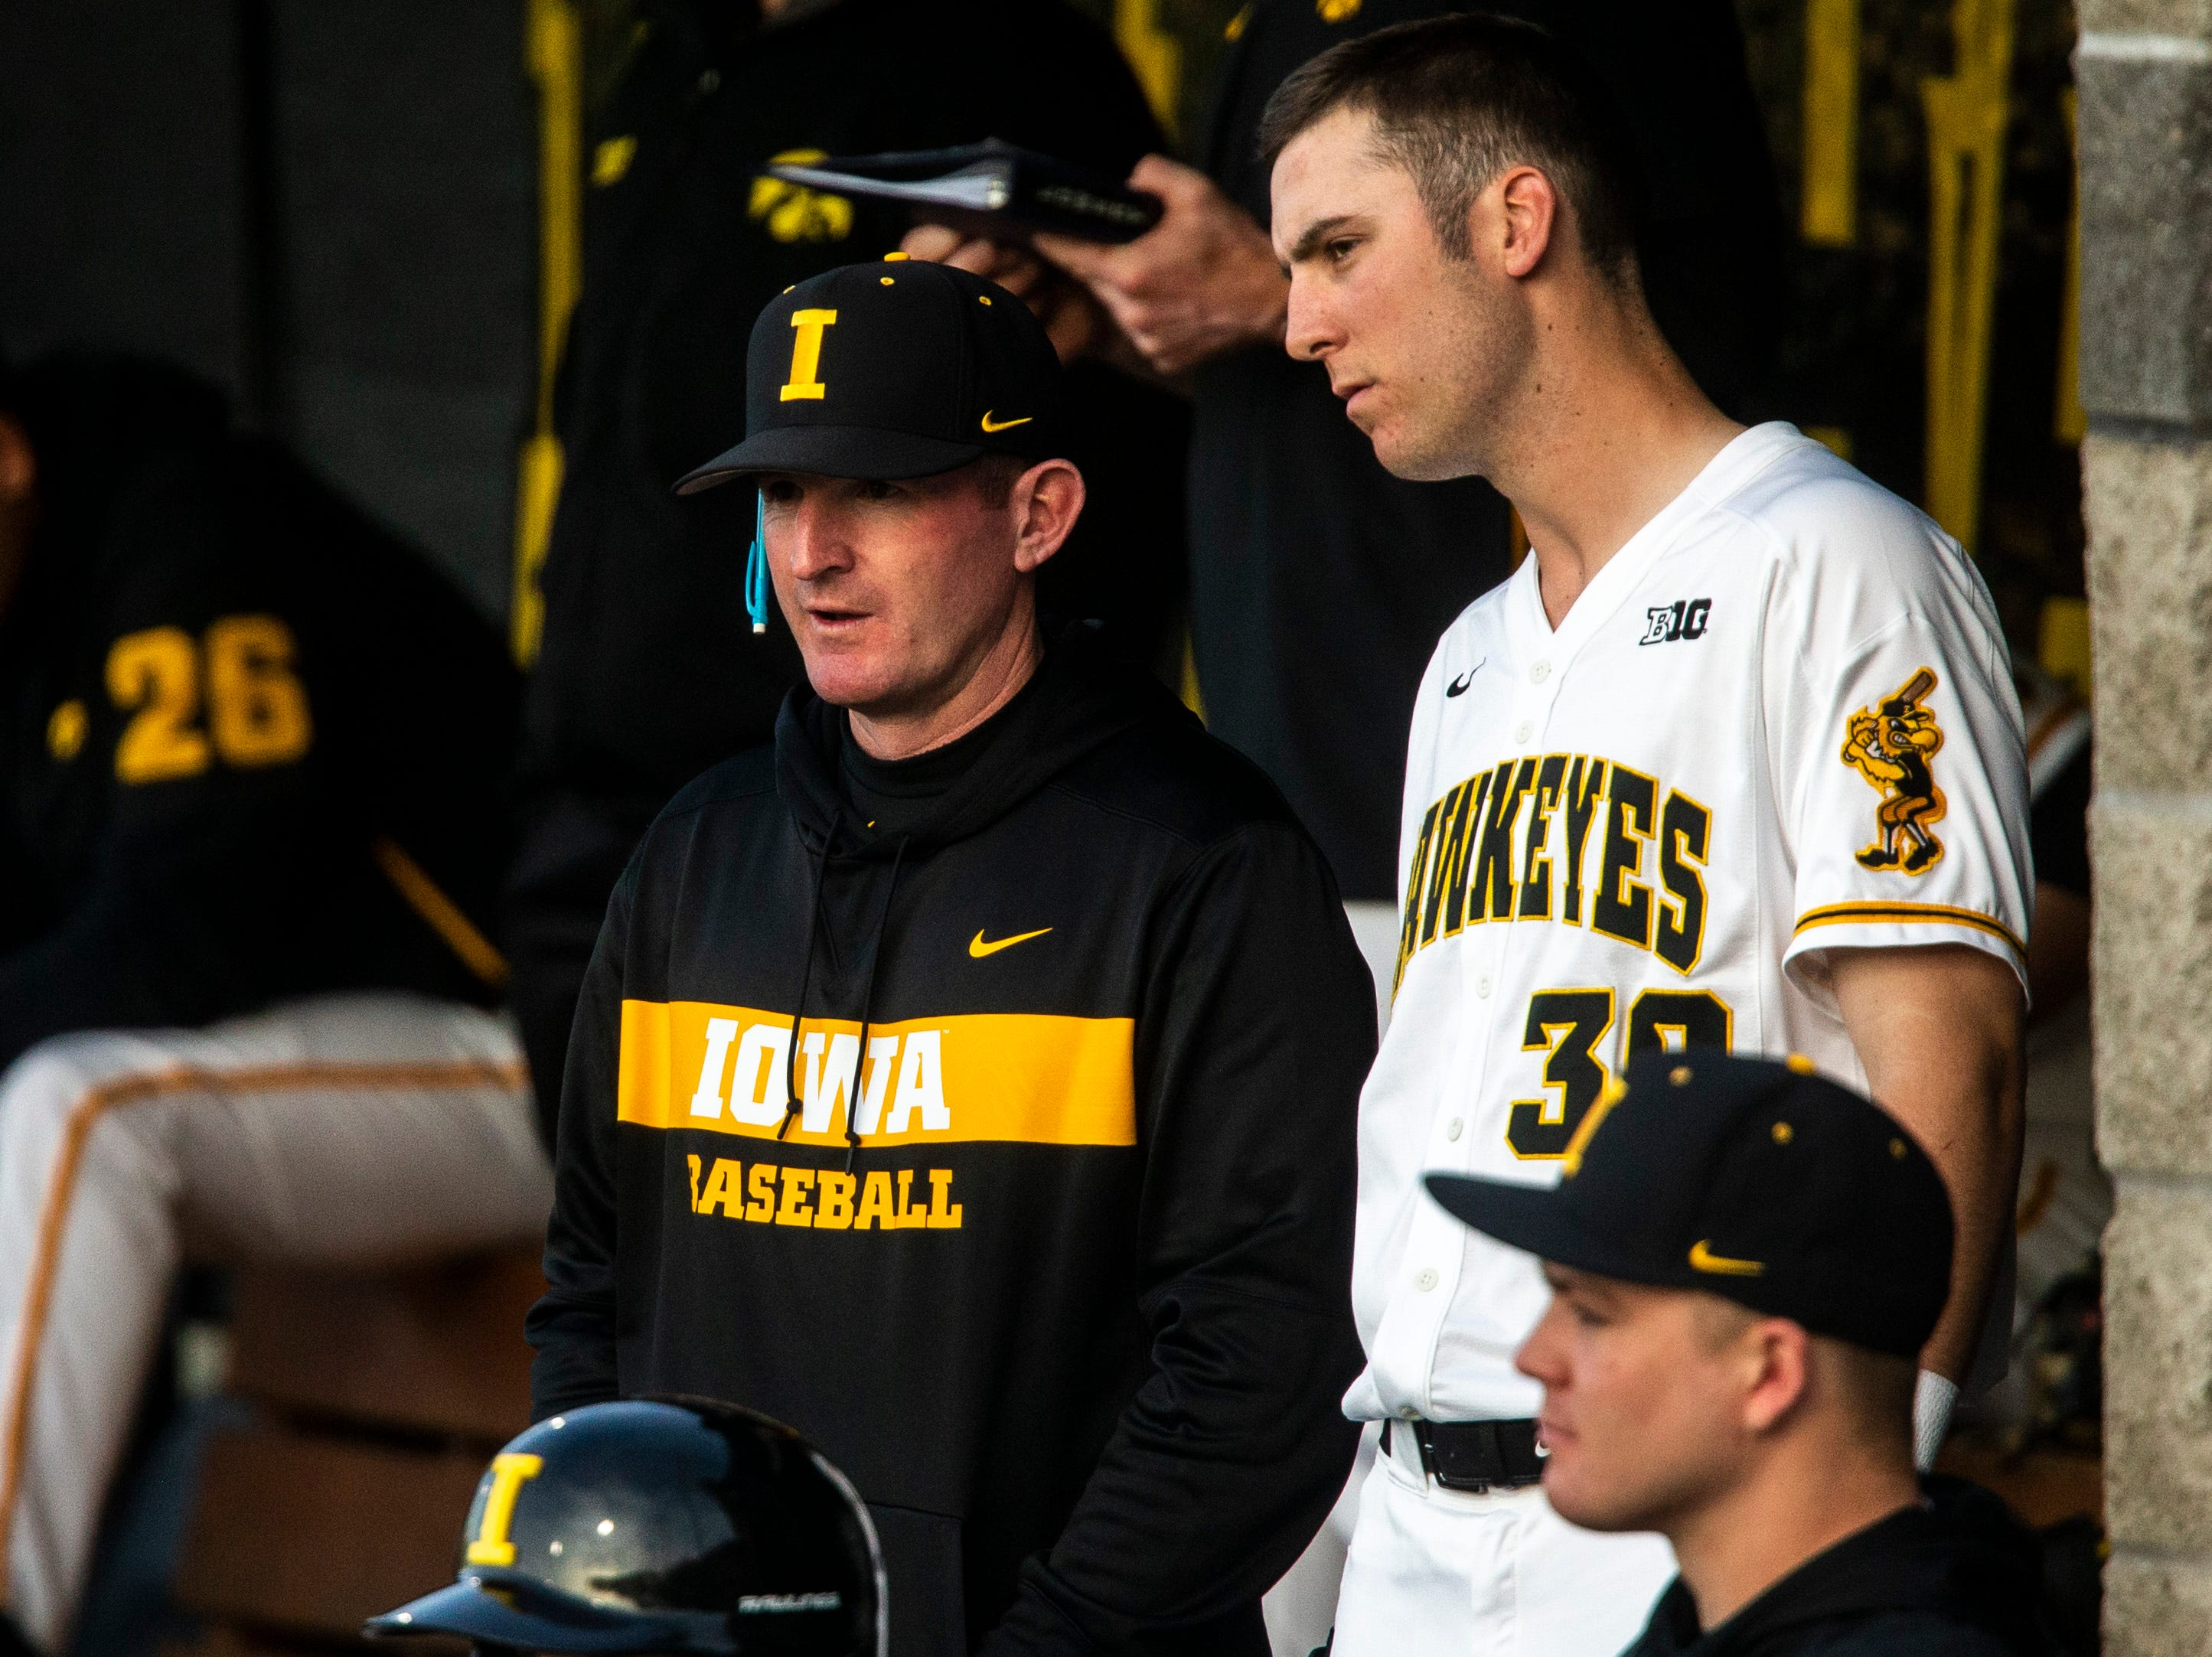 Iowa's Connor McCaffery (30) talks with Marty Sutherland, left, in the dugout during NCAA non conference baseball game, Friday, May 3, 2019, at Duane Banks Field in Iowa City, Iowa.